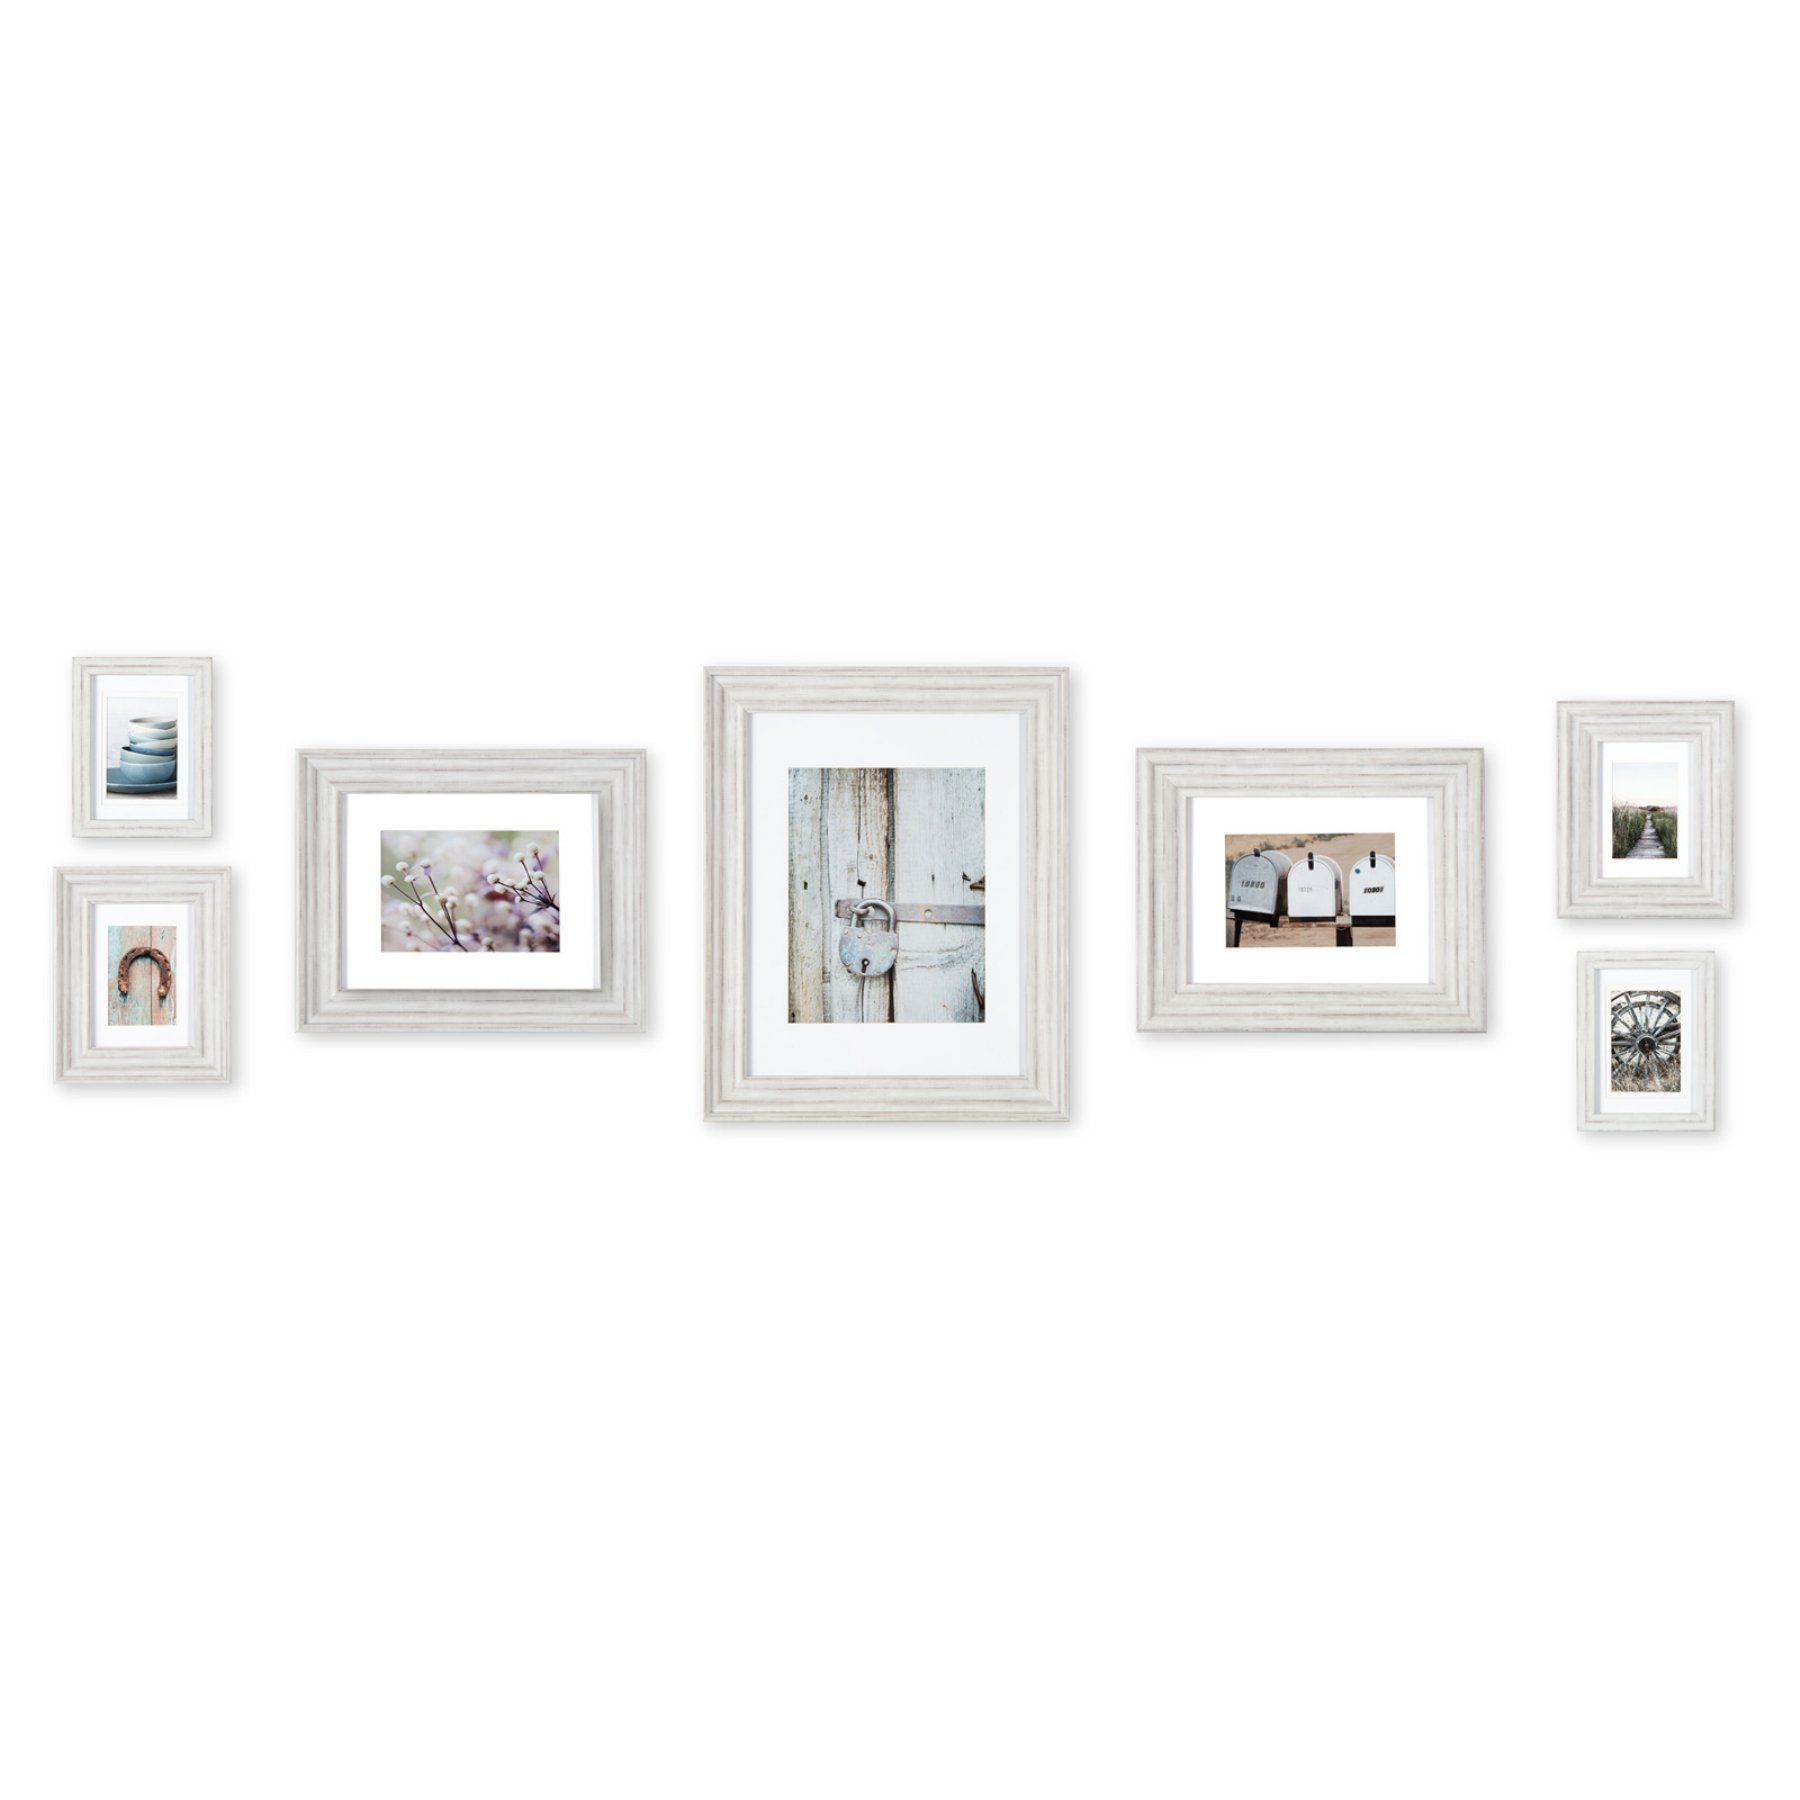 Nielsen Bainbridge Distressed White Mixed Pro Wall Picture Frame Kit